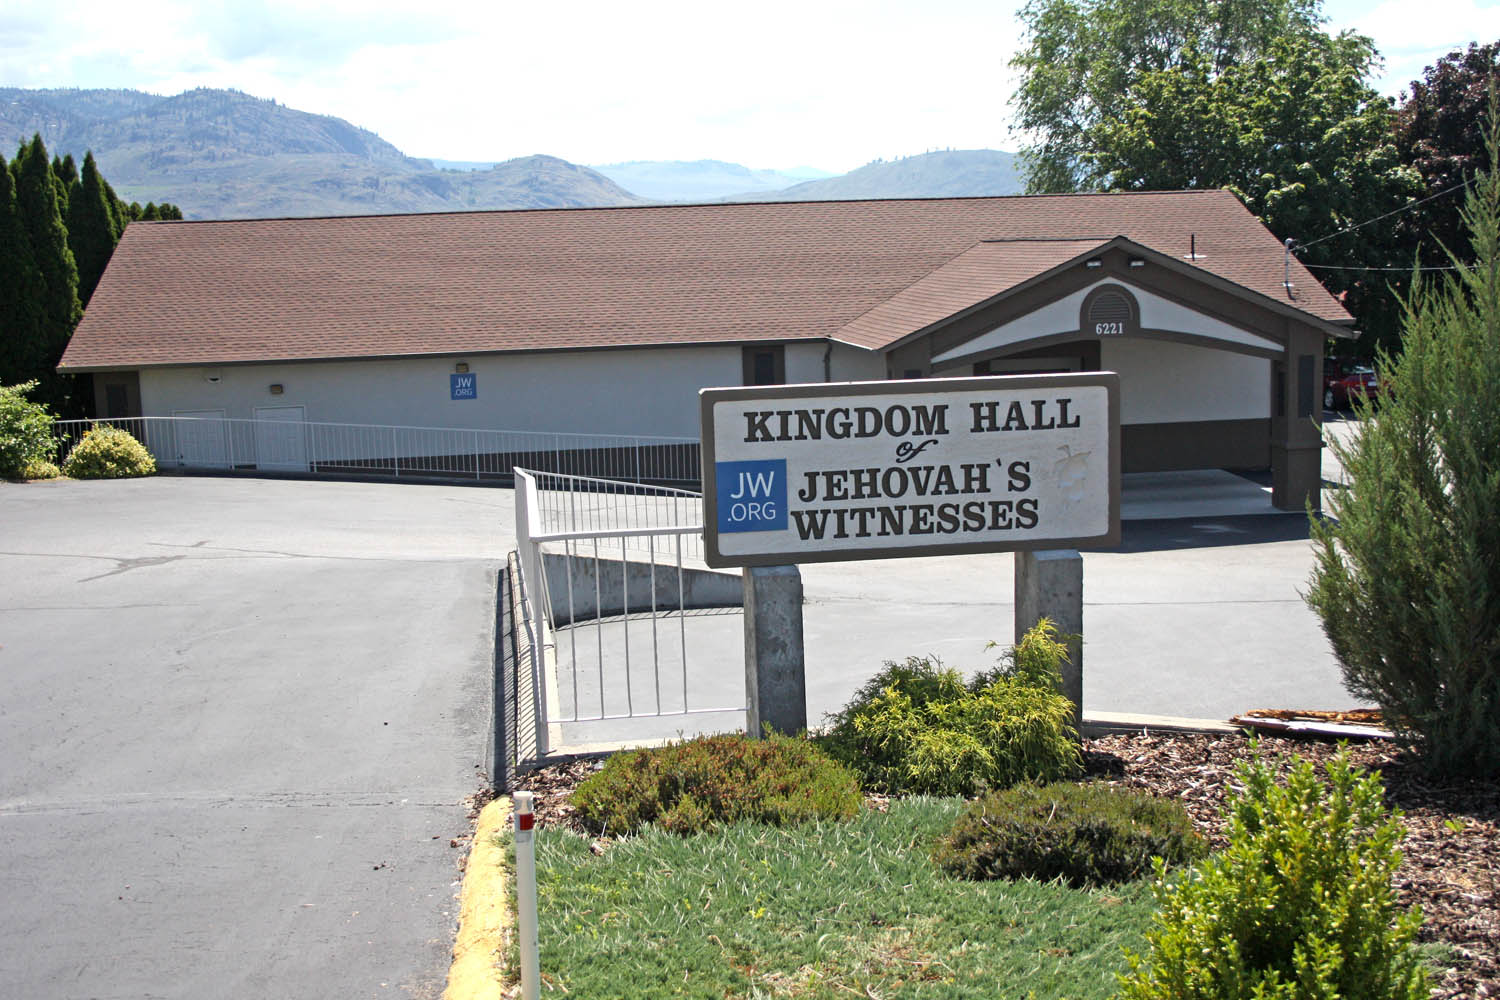 Close to 200 Jehovah's Witnesses from Osoyoos and Oliver will be amongst the thousands of delegates who will pack into the South Okanagan Events Centre (SOEC) in Penticton this weekend to attend the 2015 regional South Okanagan conference for Jehovah's Witnesses. A congregation of between 60 and 70 from Osoyoos and another 90 to 100 from the Oliver congregation are also expected to attend the conference. Picture above is the home of the local congregation from Osoyoos on Hwy. 97. (Keith Lacey photo)